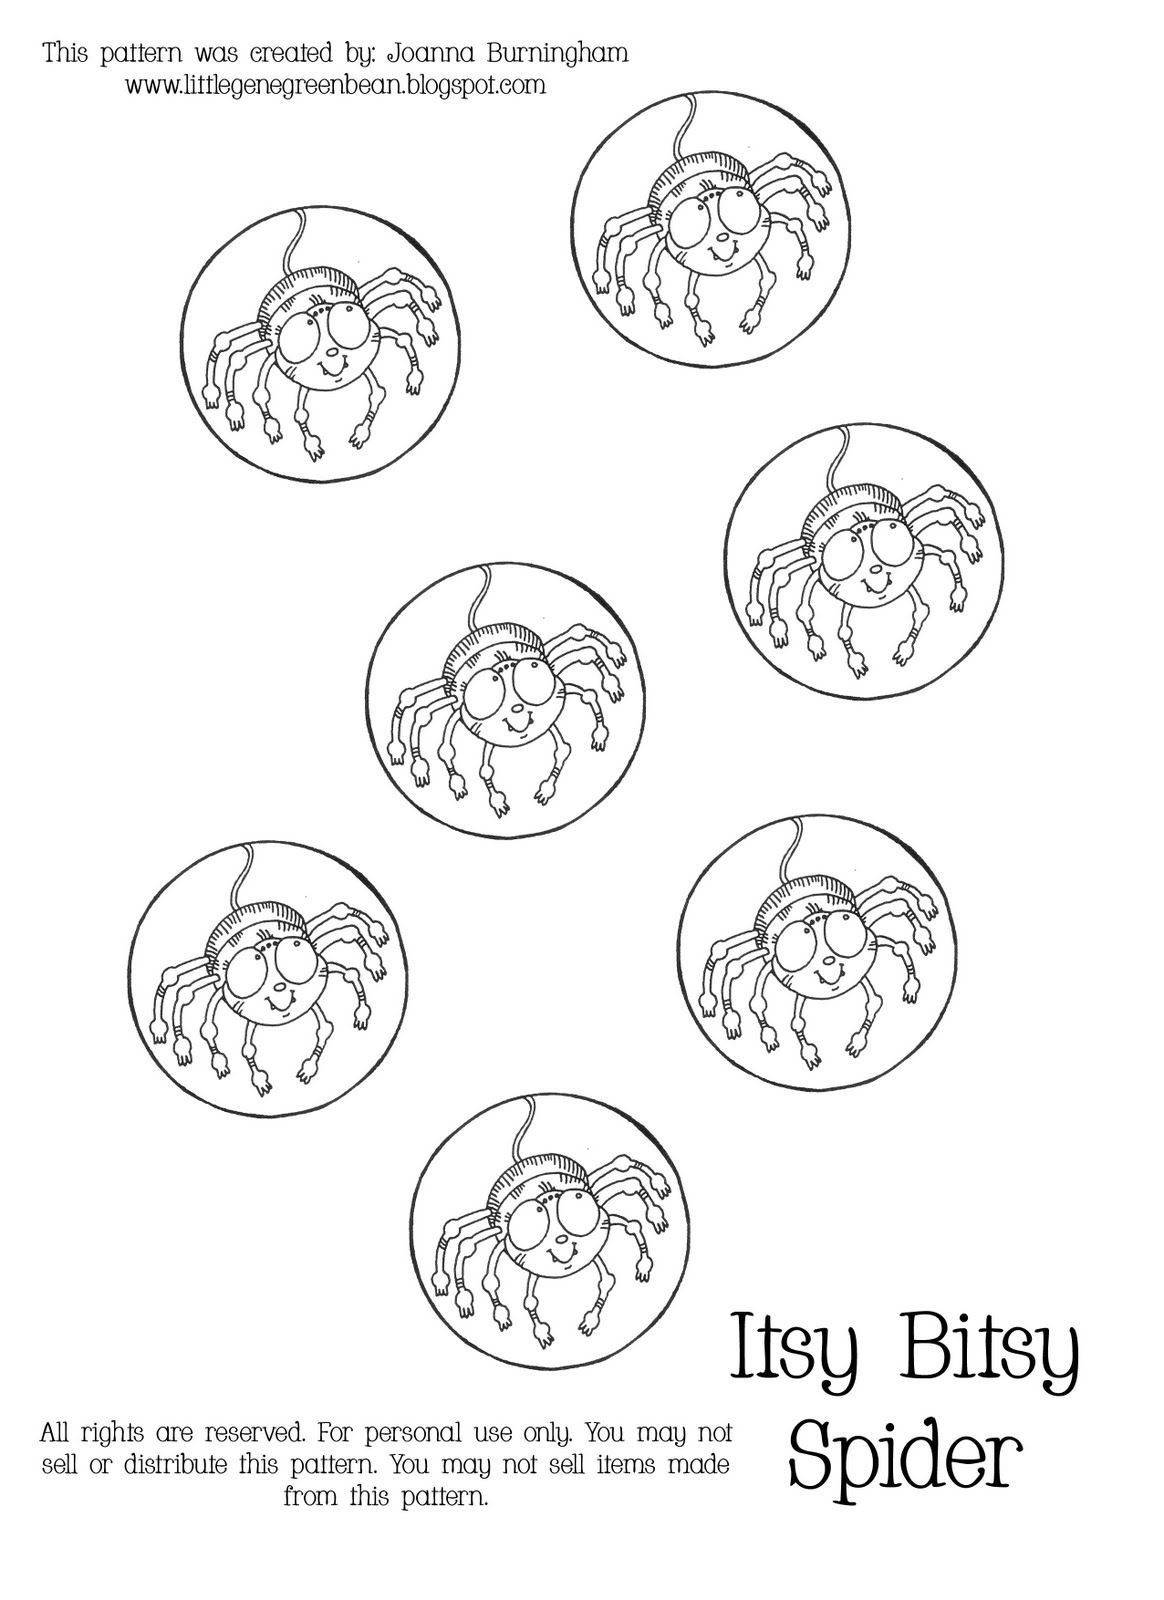 Itsy Bitsy Spider | Primary Ideas | Pinterest | Gene green, Flannel ...